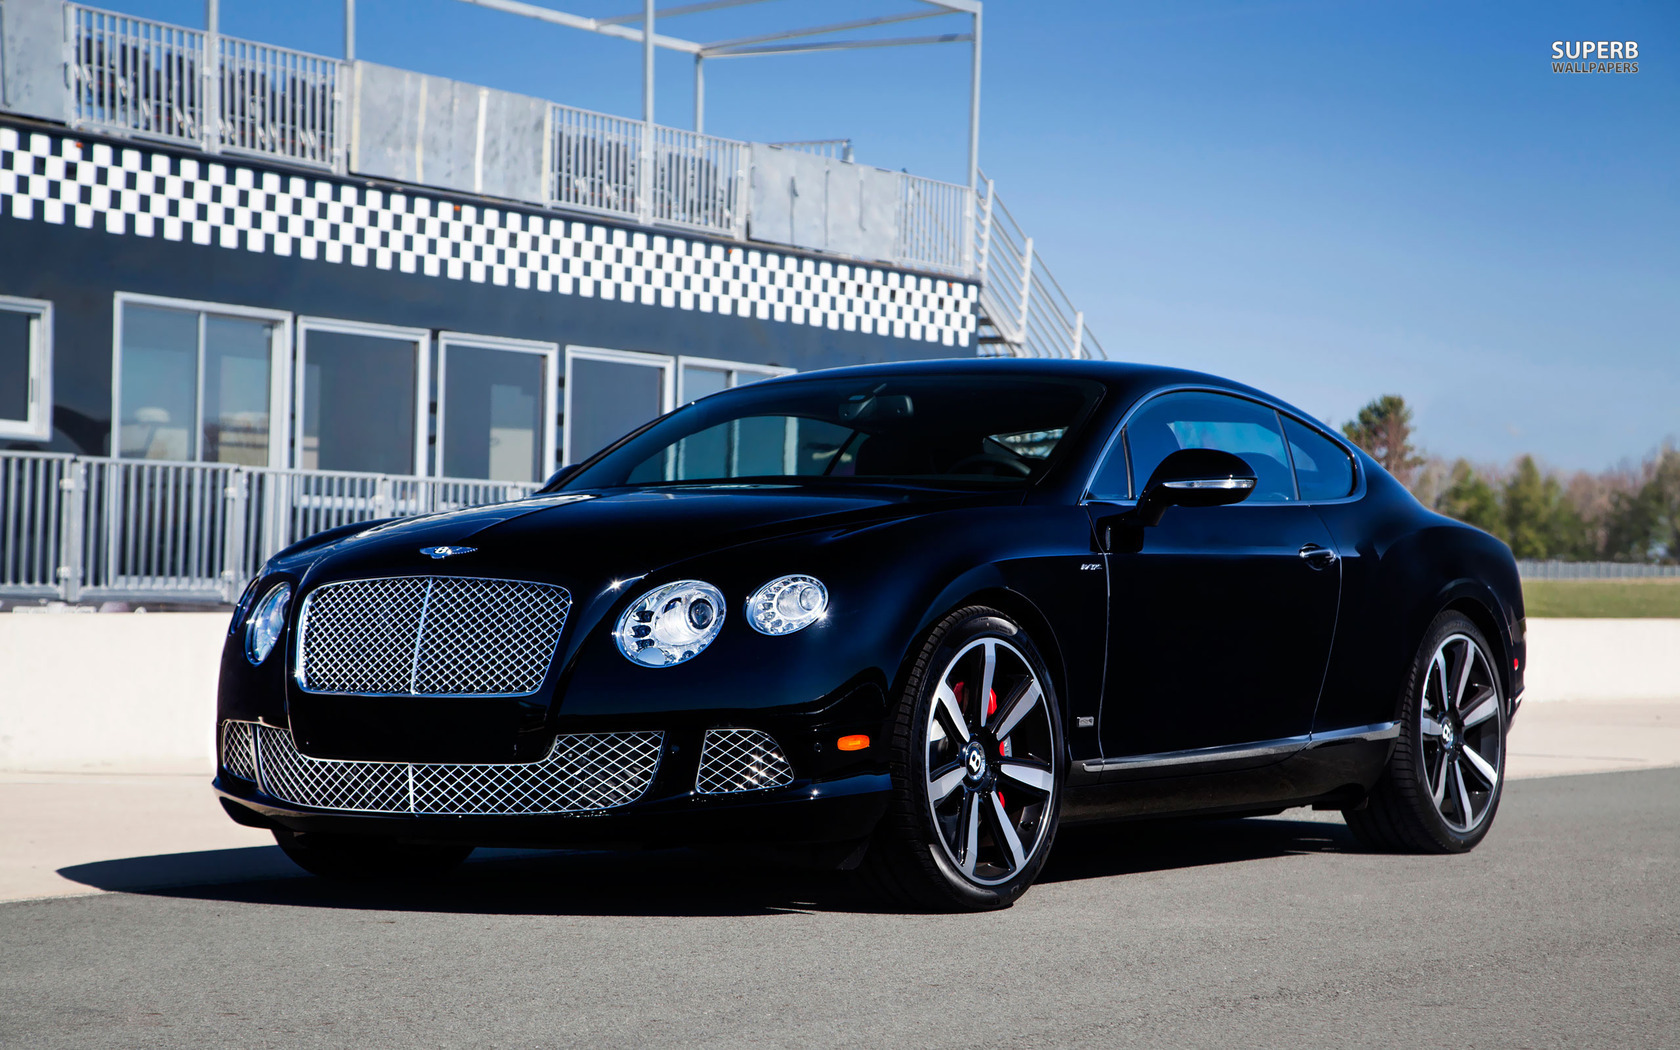 2013-bentley-mulsanne-20645-1680x1050